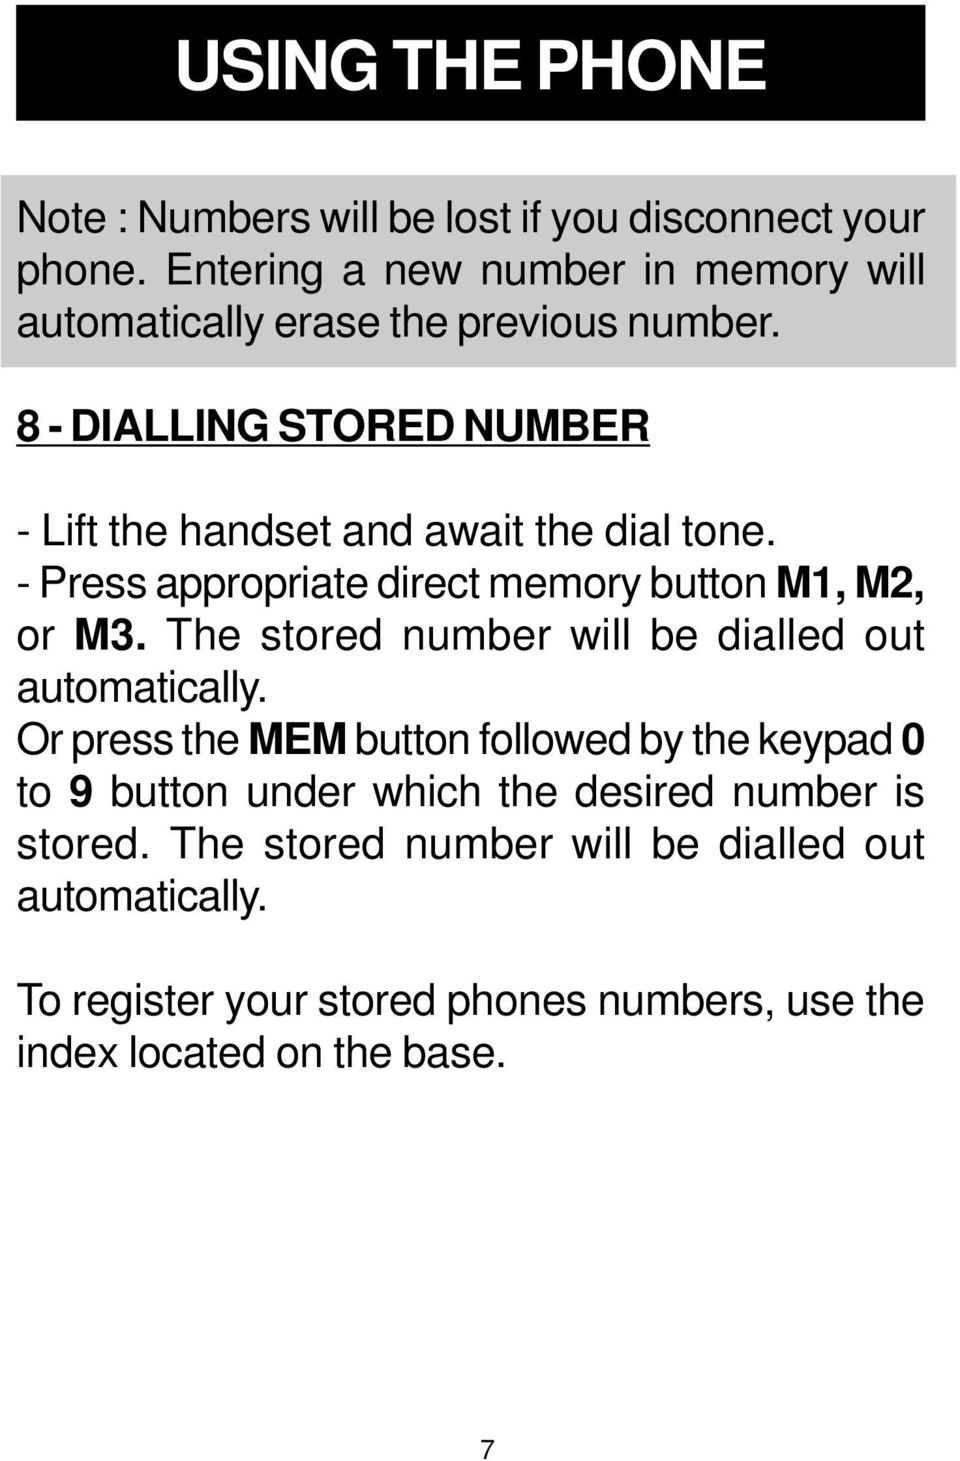 8 - DIALLING STORED NUMBER - Lift the handset and await the dial tone. - Press appropriate direct memory button M1, M2, or M3.